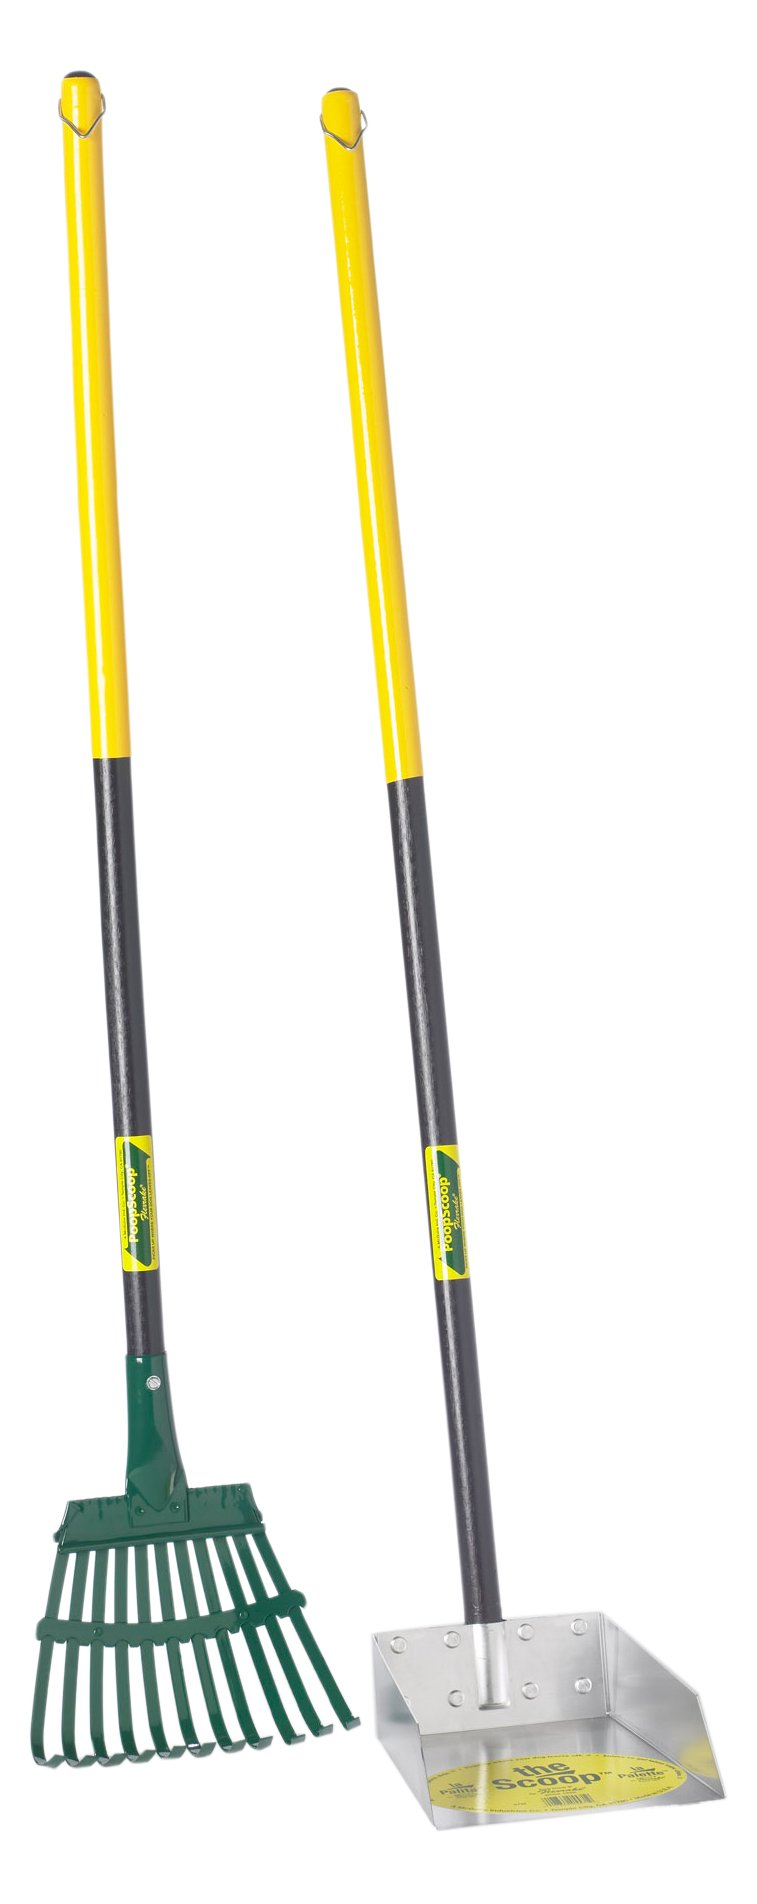 Flexrake 58W Small Scoop and Steel Rake Set with 36-Inch Cherry Stained Wood Handle